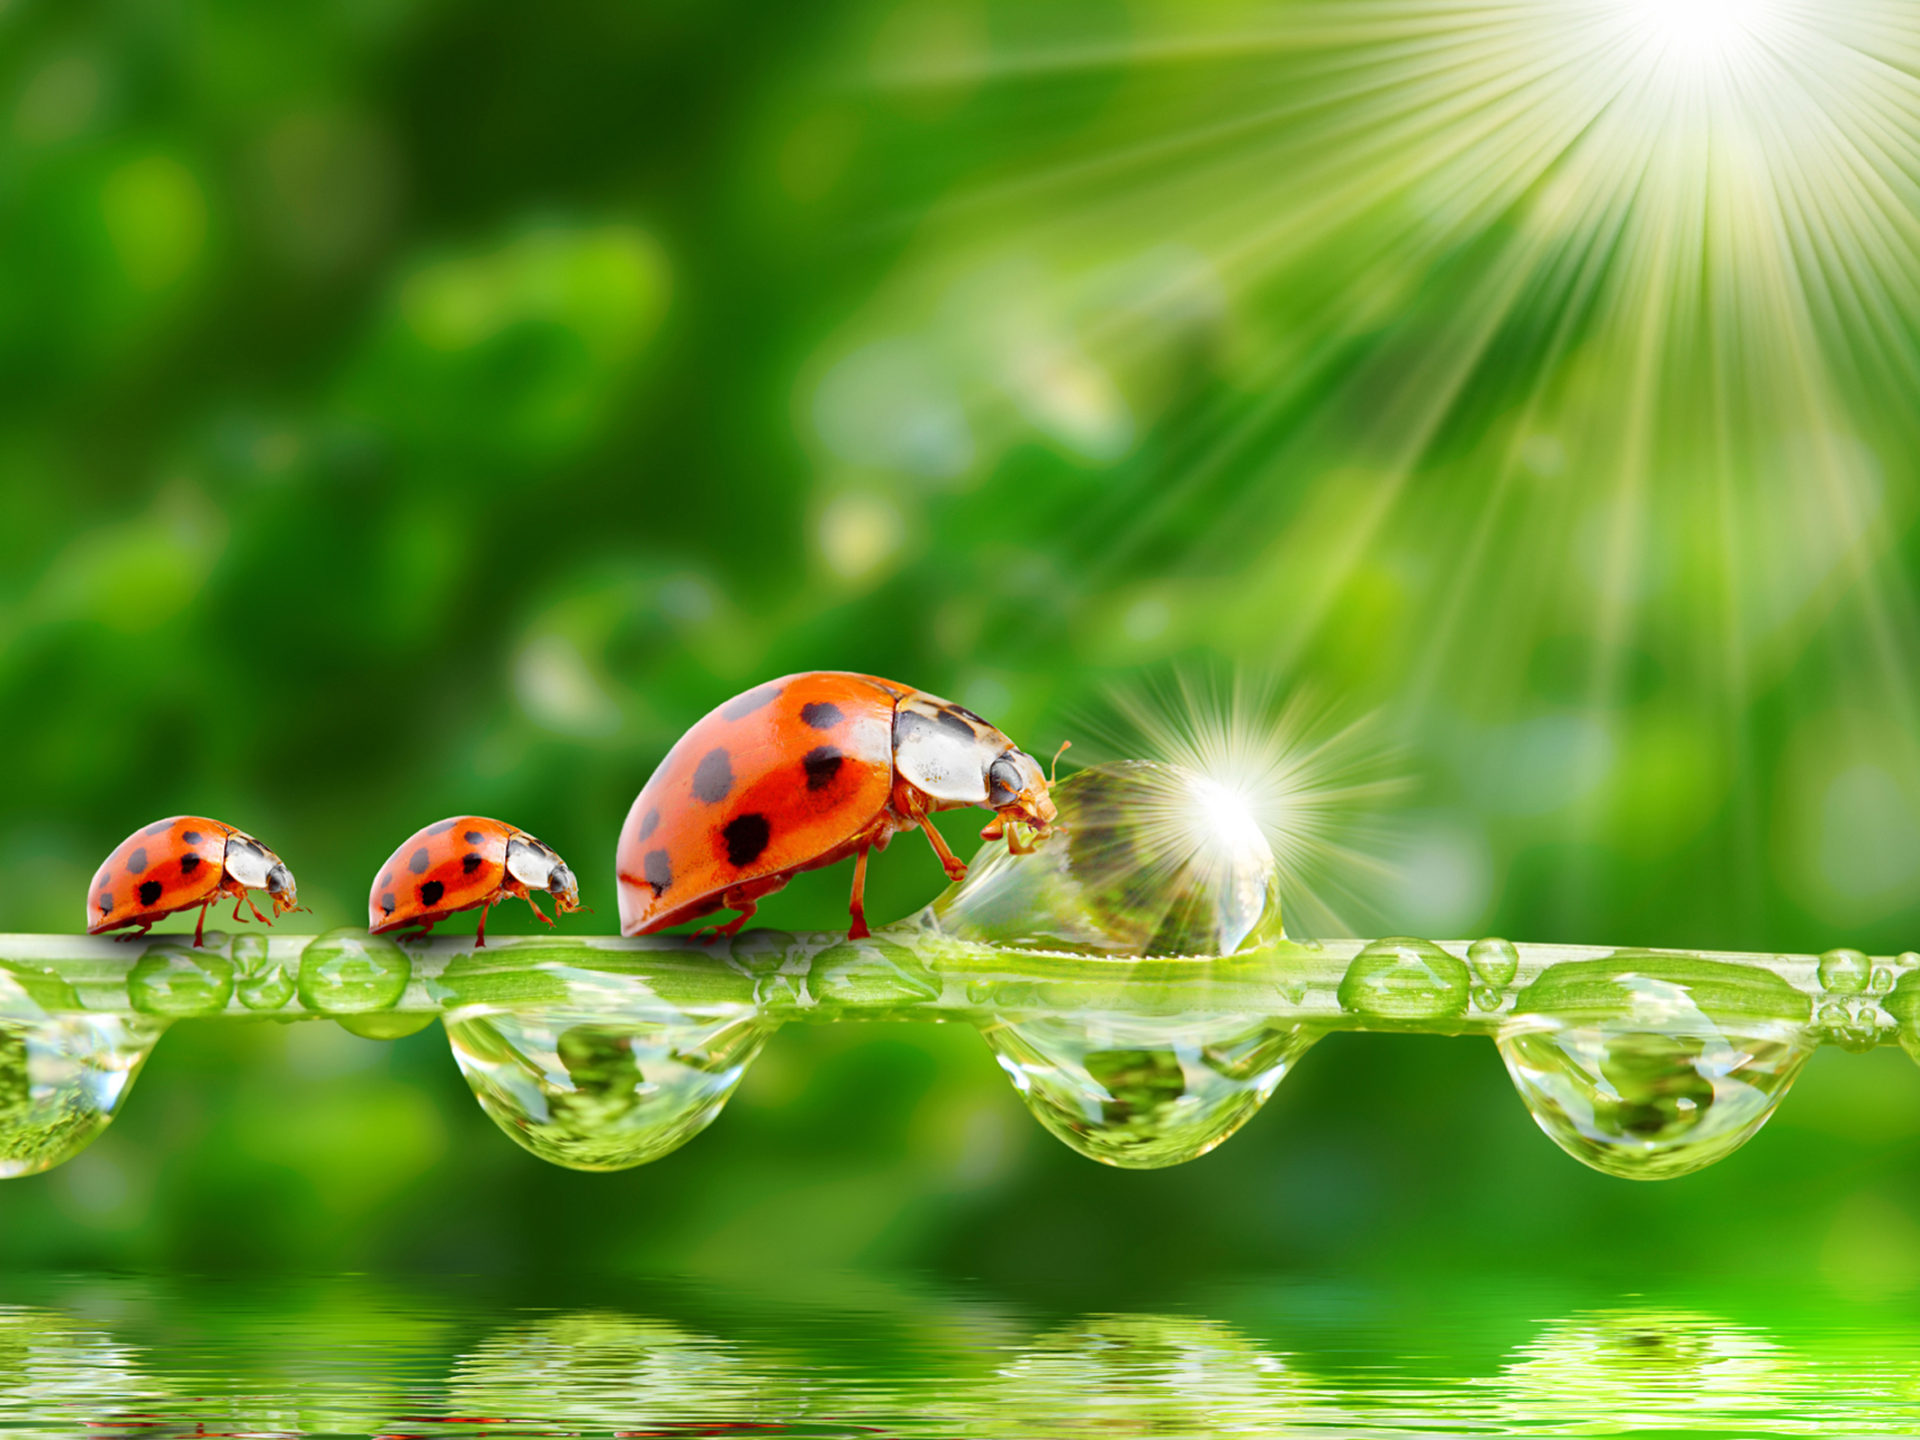 Raindrop Wallpaper Iphone X Ladybug Sun Rays Grass Morning Dew Drops Water Wallpaper